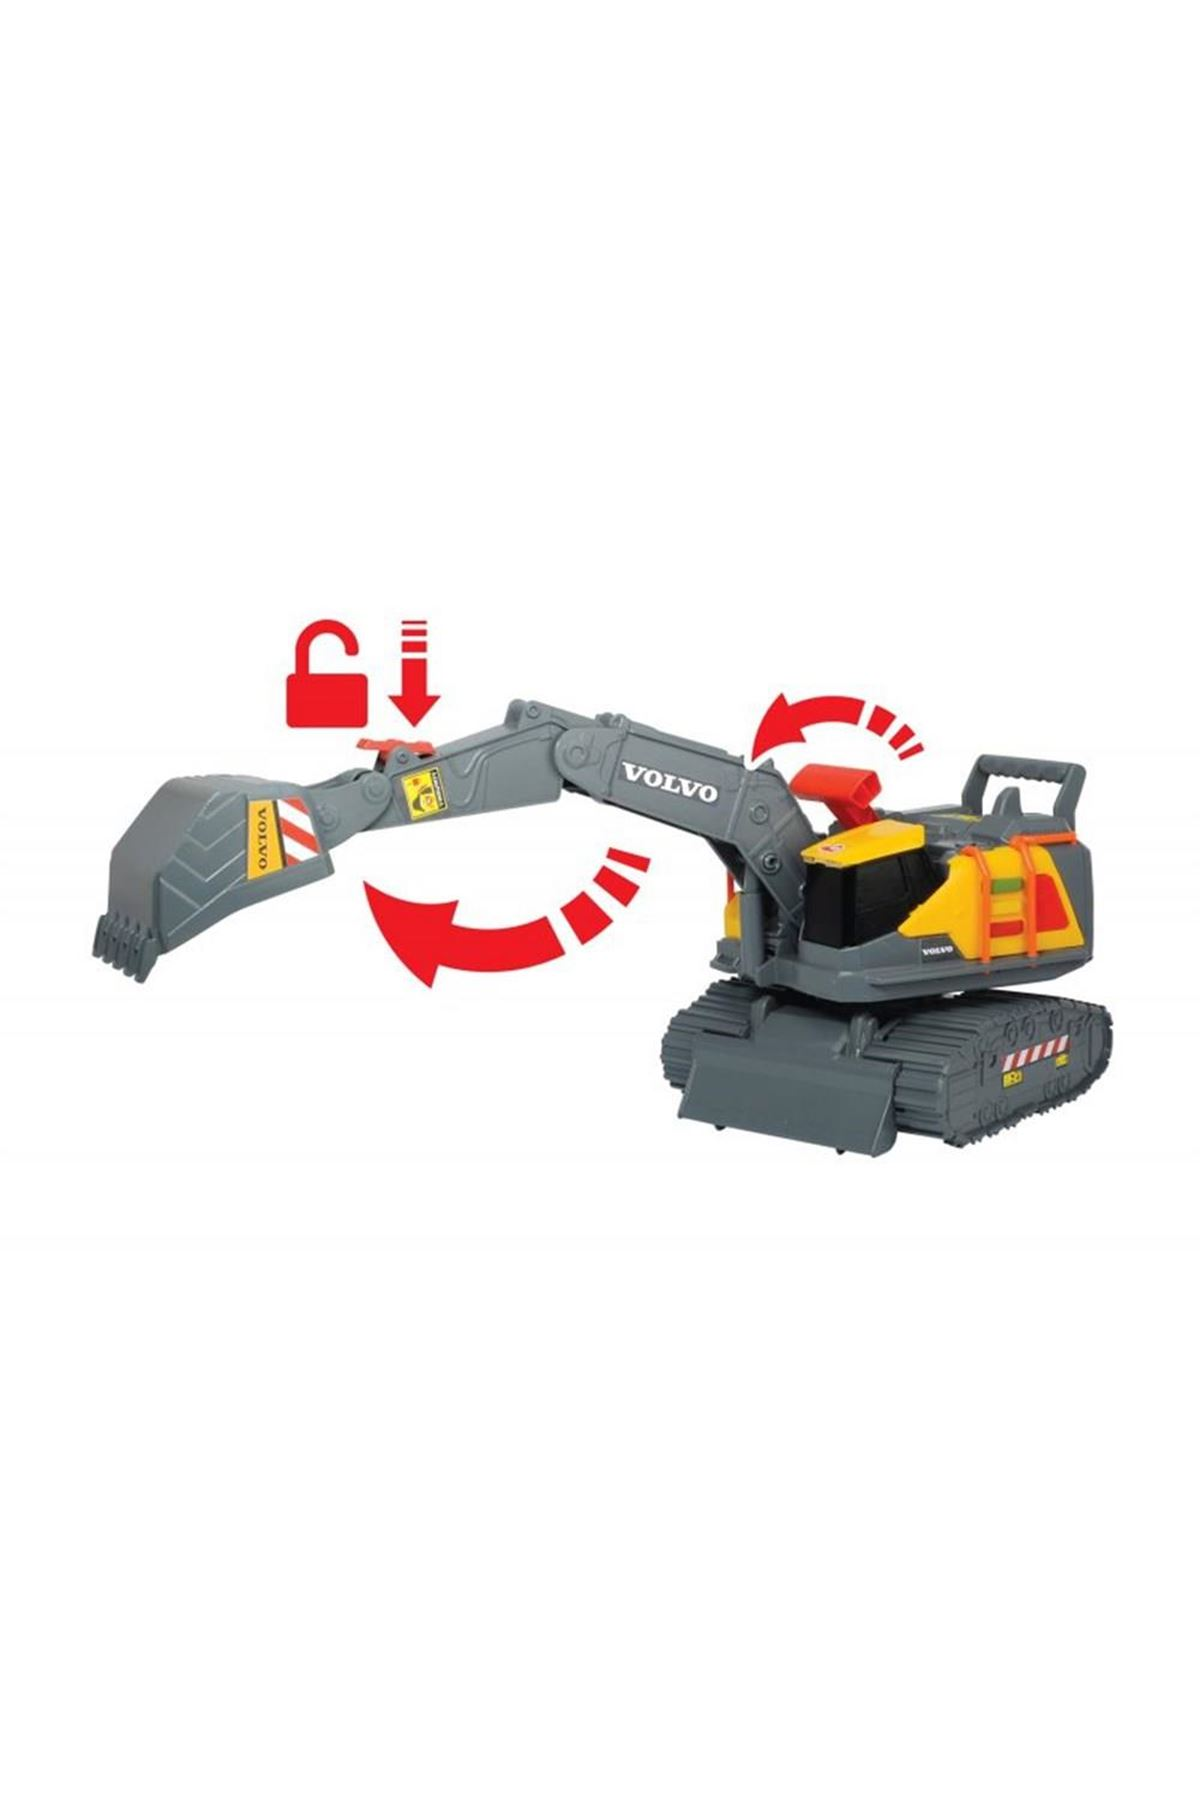 Dickie Toys Volvo Weight Lift Excavator 5006